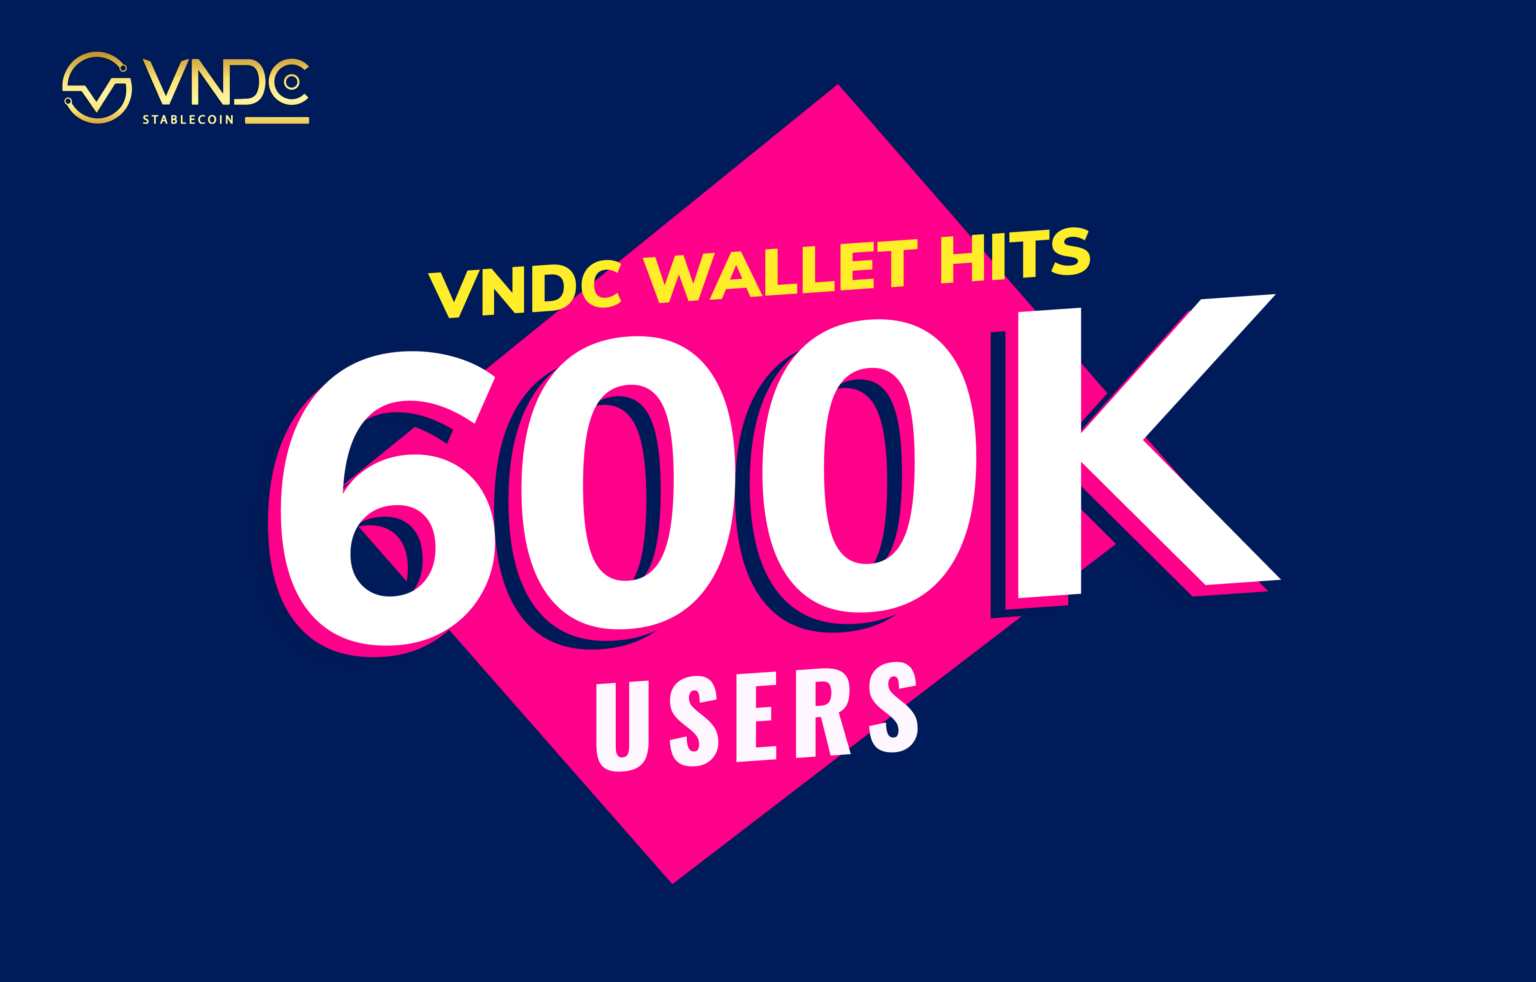 VNDC Wallet hits 600K users after 5 months of launch